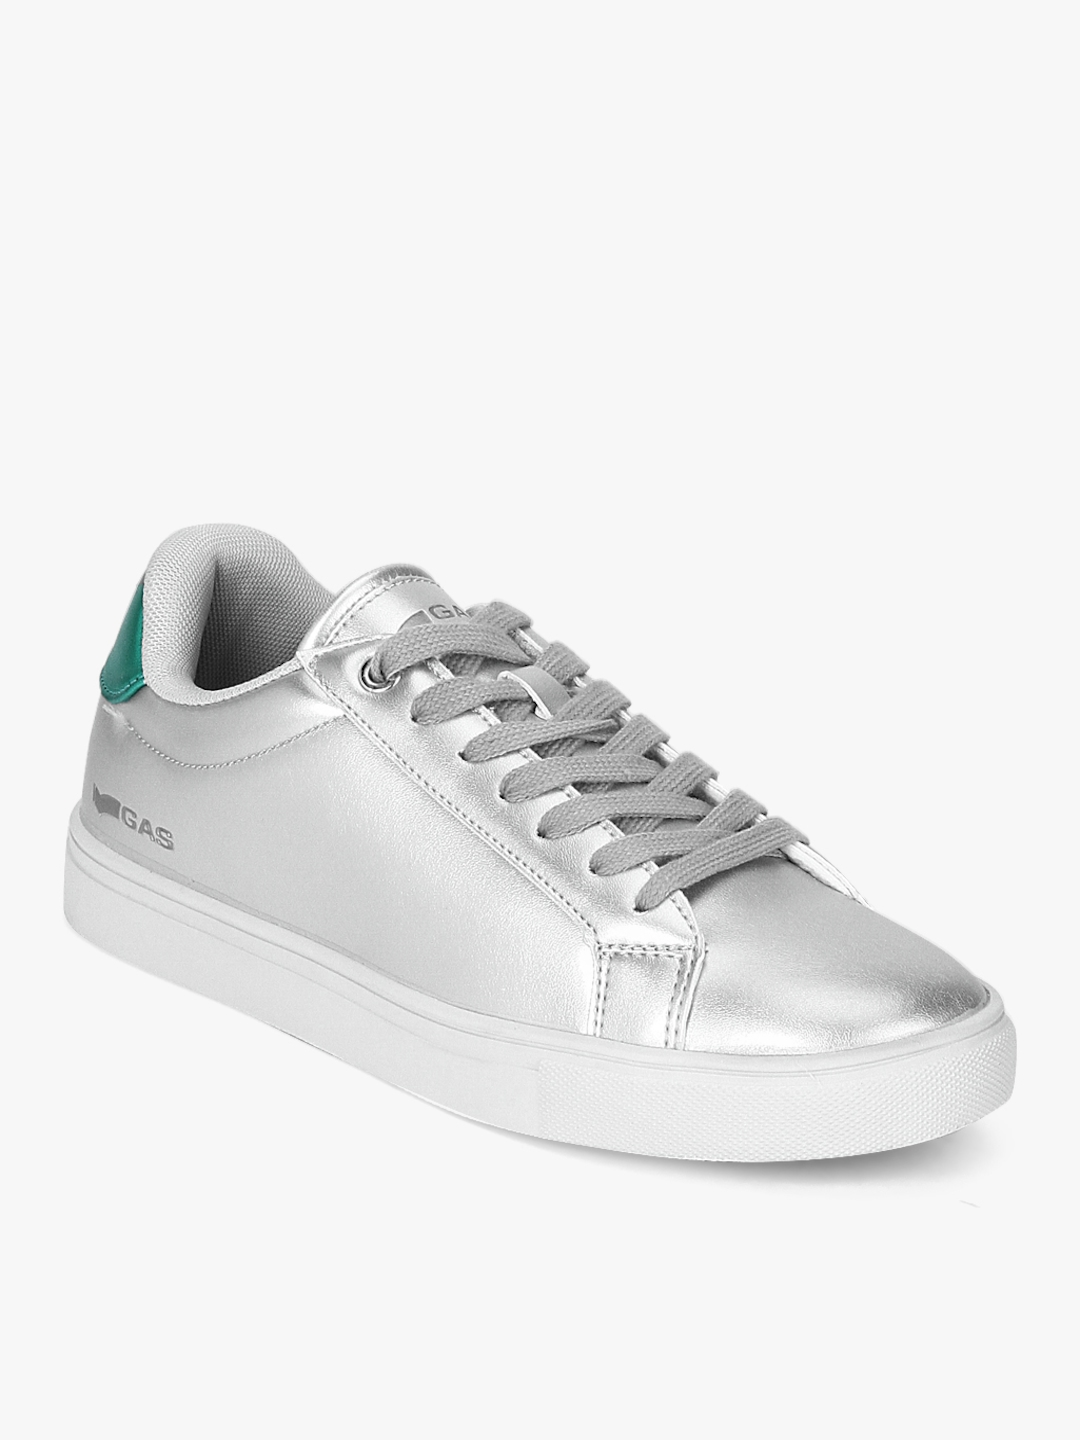 25c318c19 Buy Dna Lady Ltx Silver Casual Sneakers - Casual Shoes for Women ...